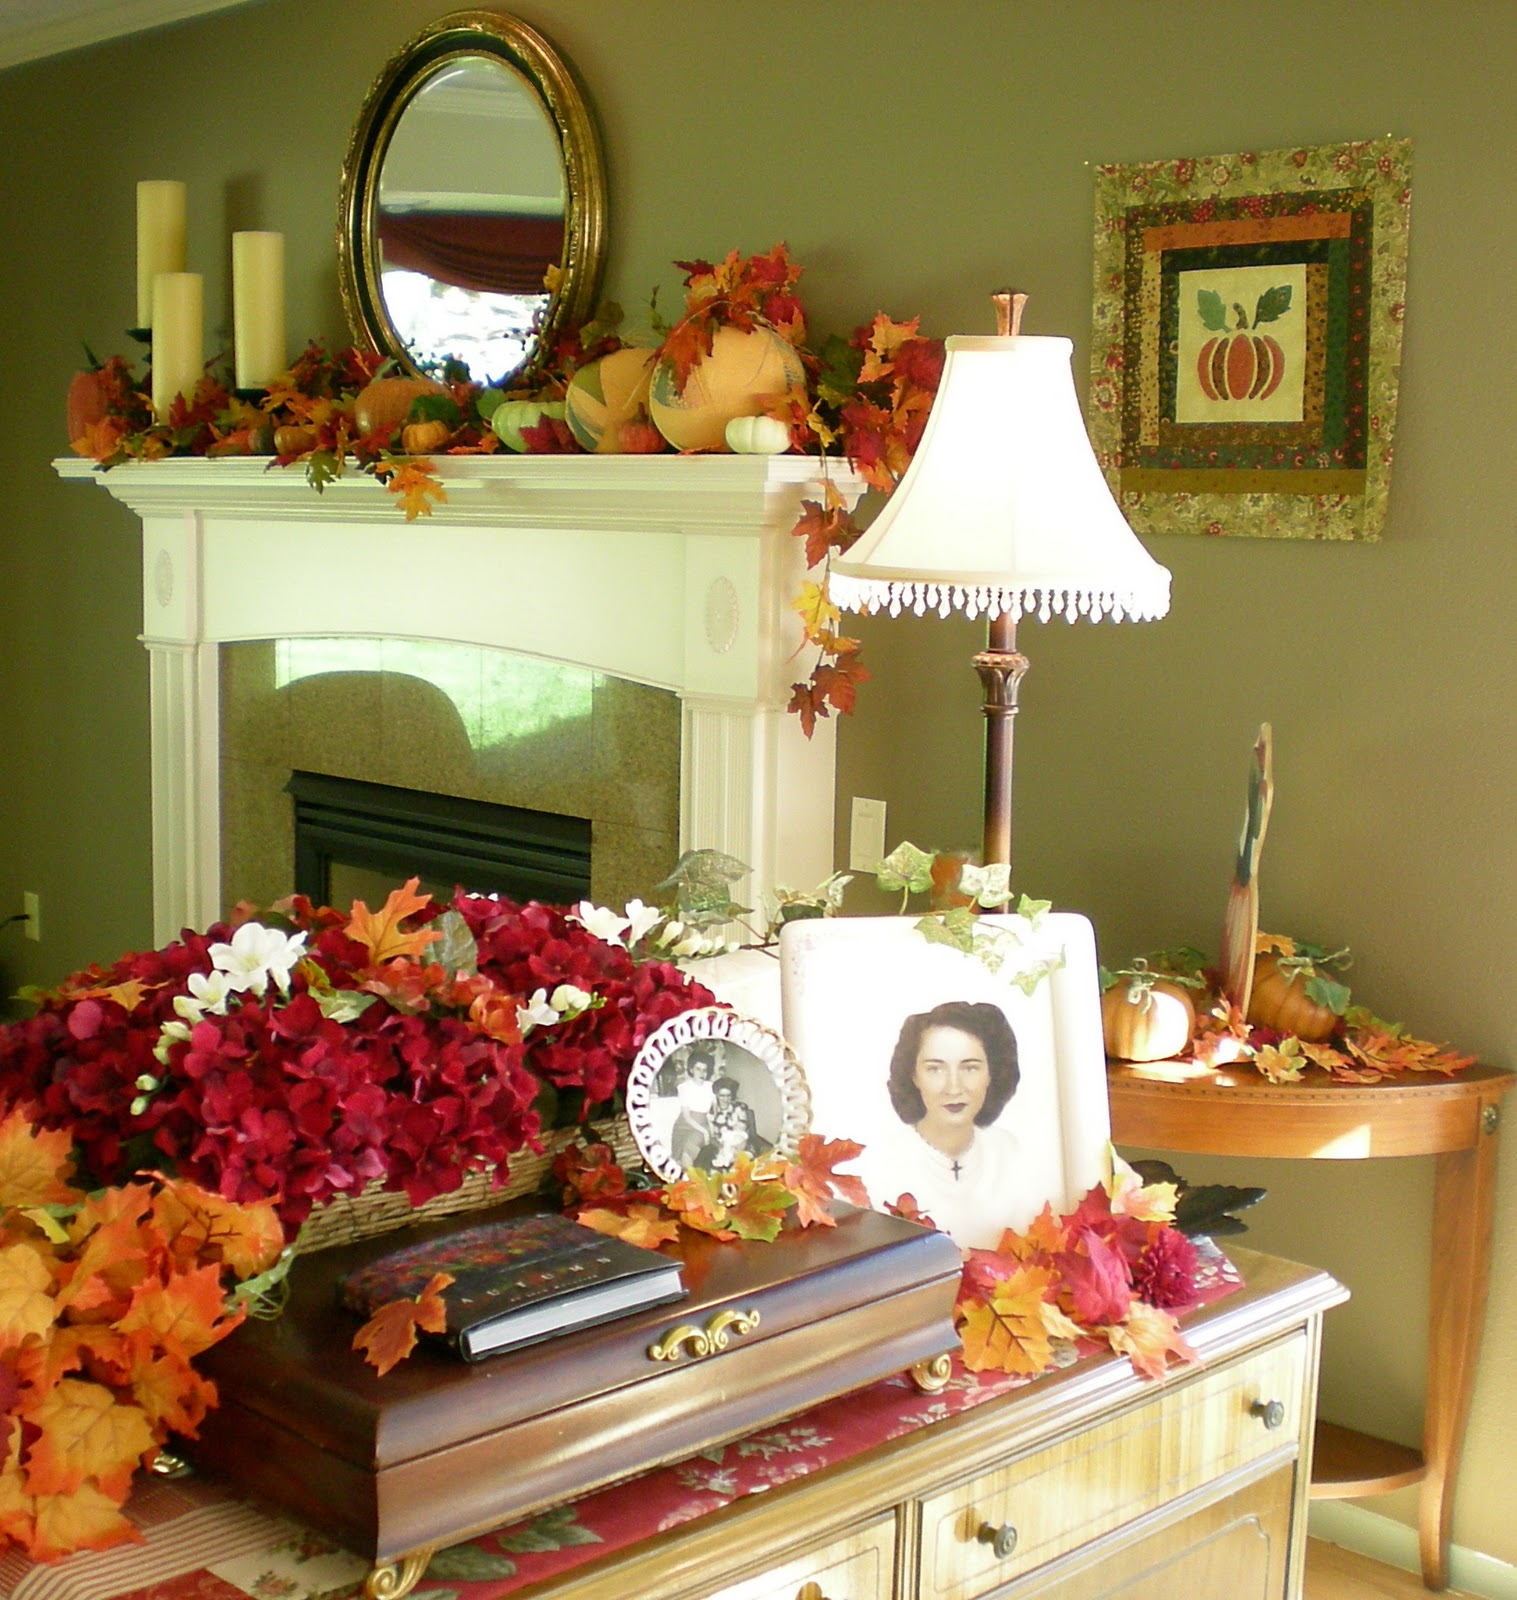 Decoration Ideas: Fall Decorating Ideas Pictures, Photos, And Images For